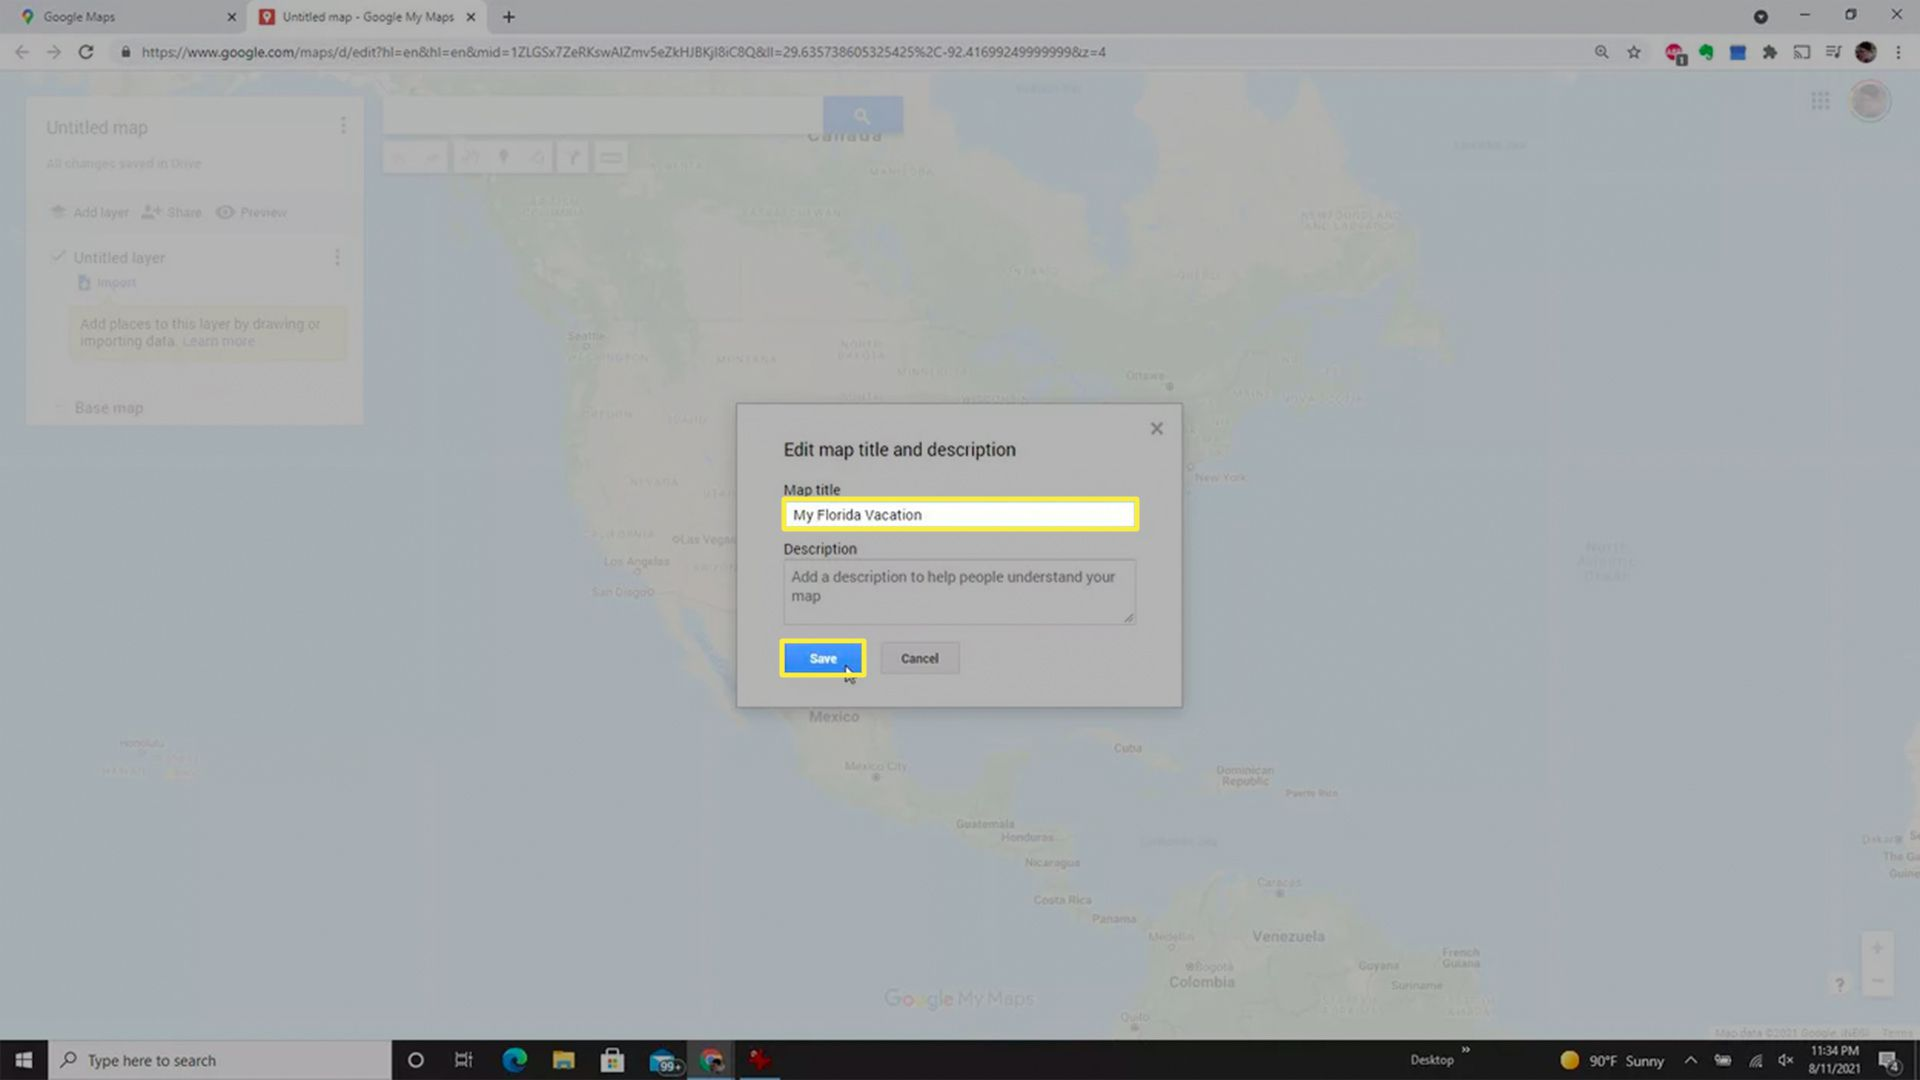 The edit name box when creating a custom map from Google Maps.